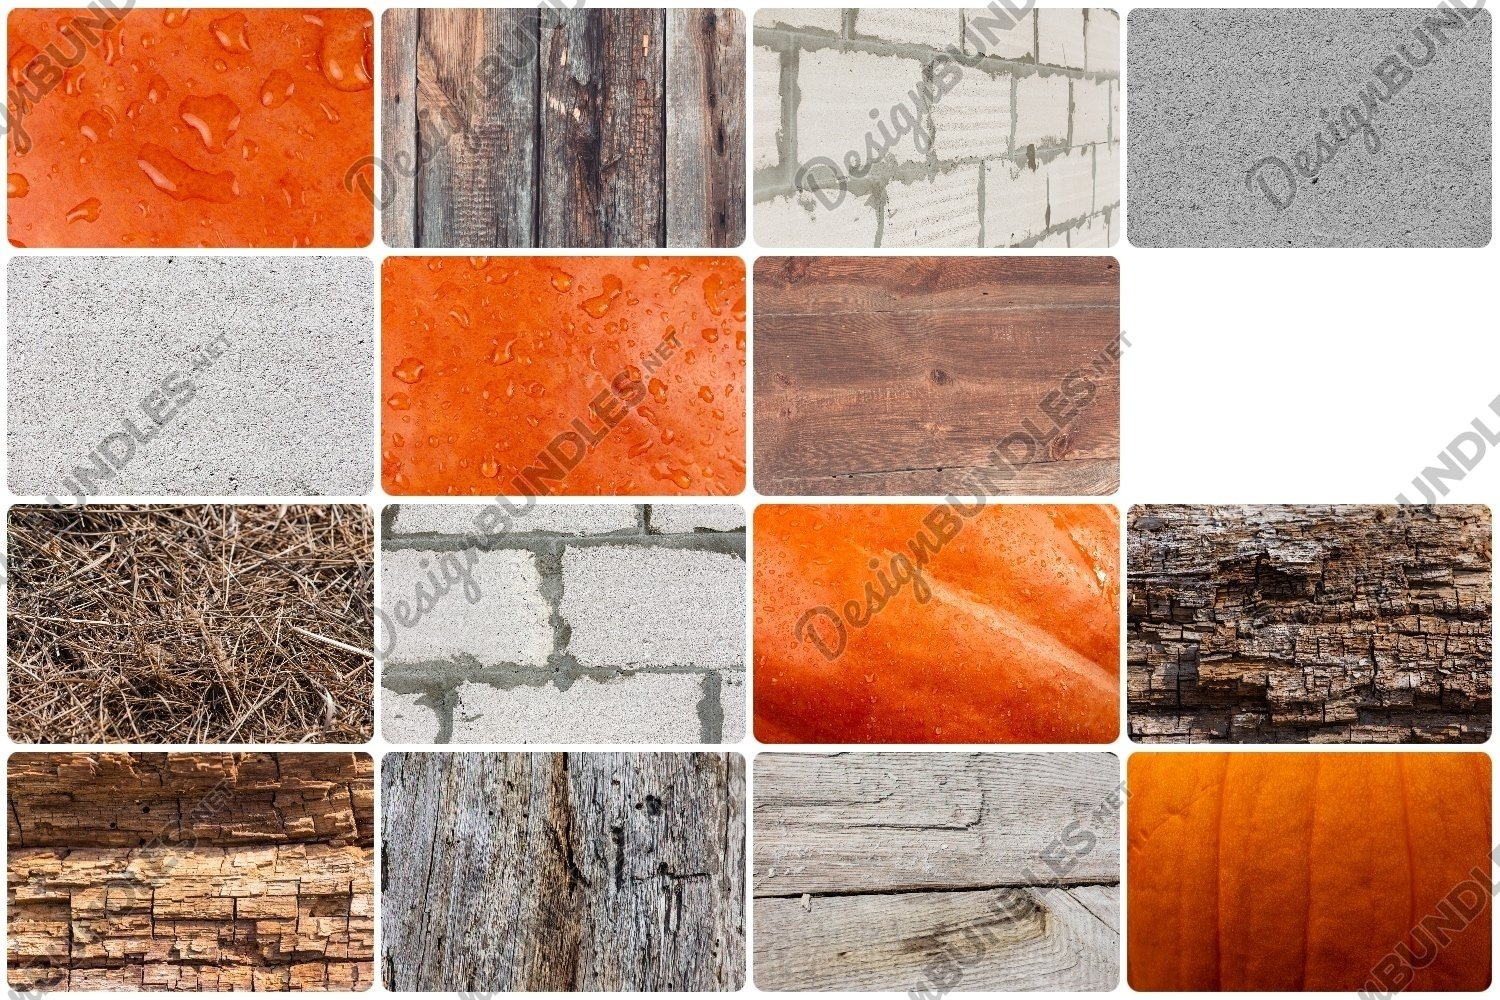 Natural backgrounds - hay, rough stone, wood, water, etc.